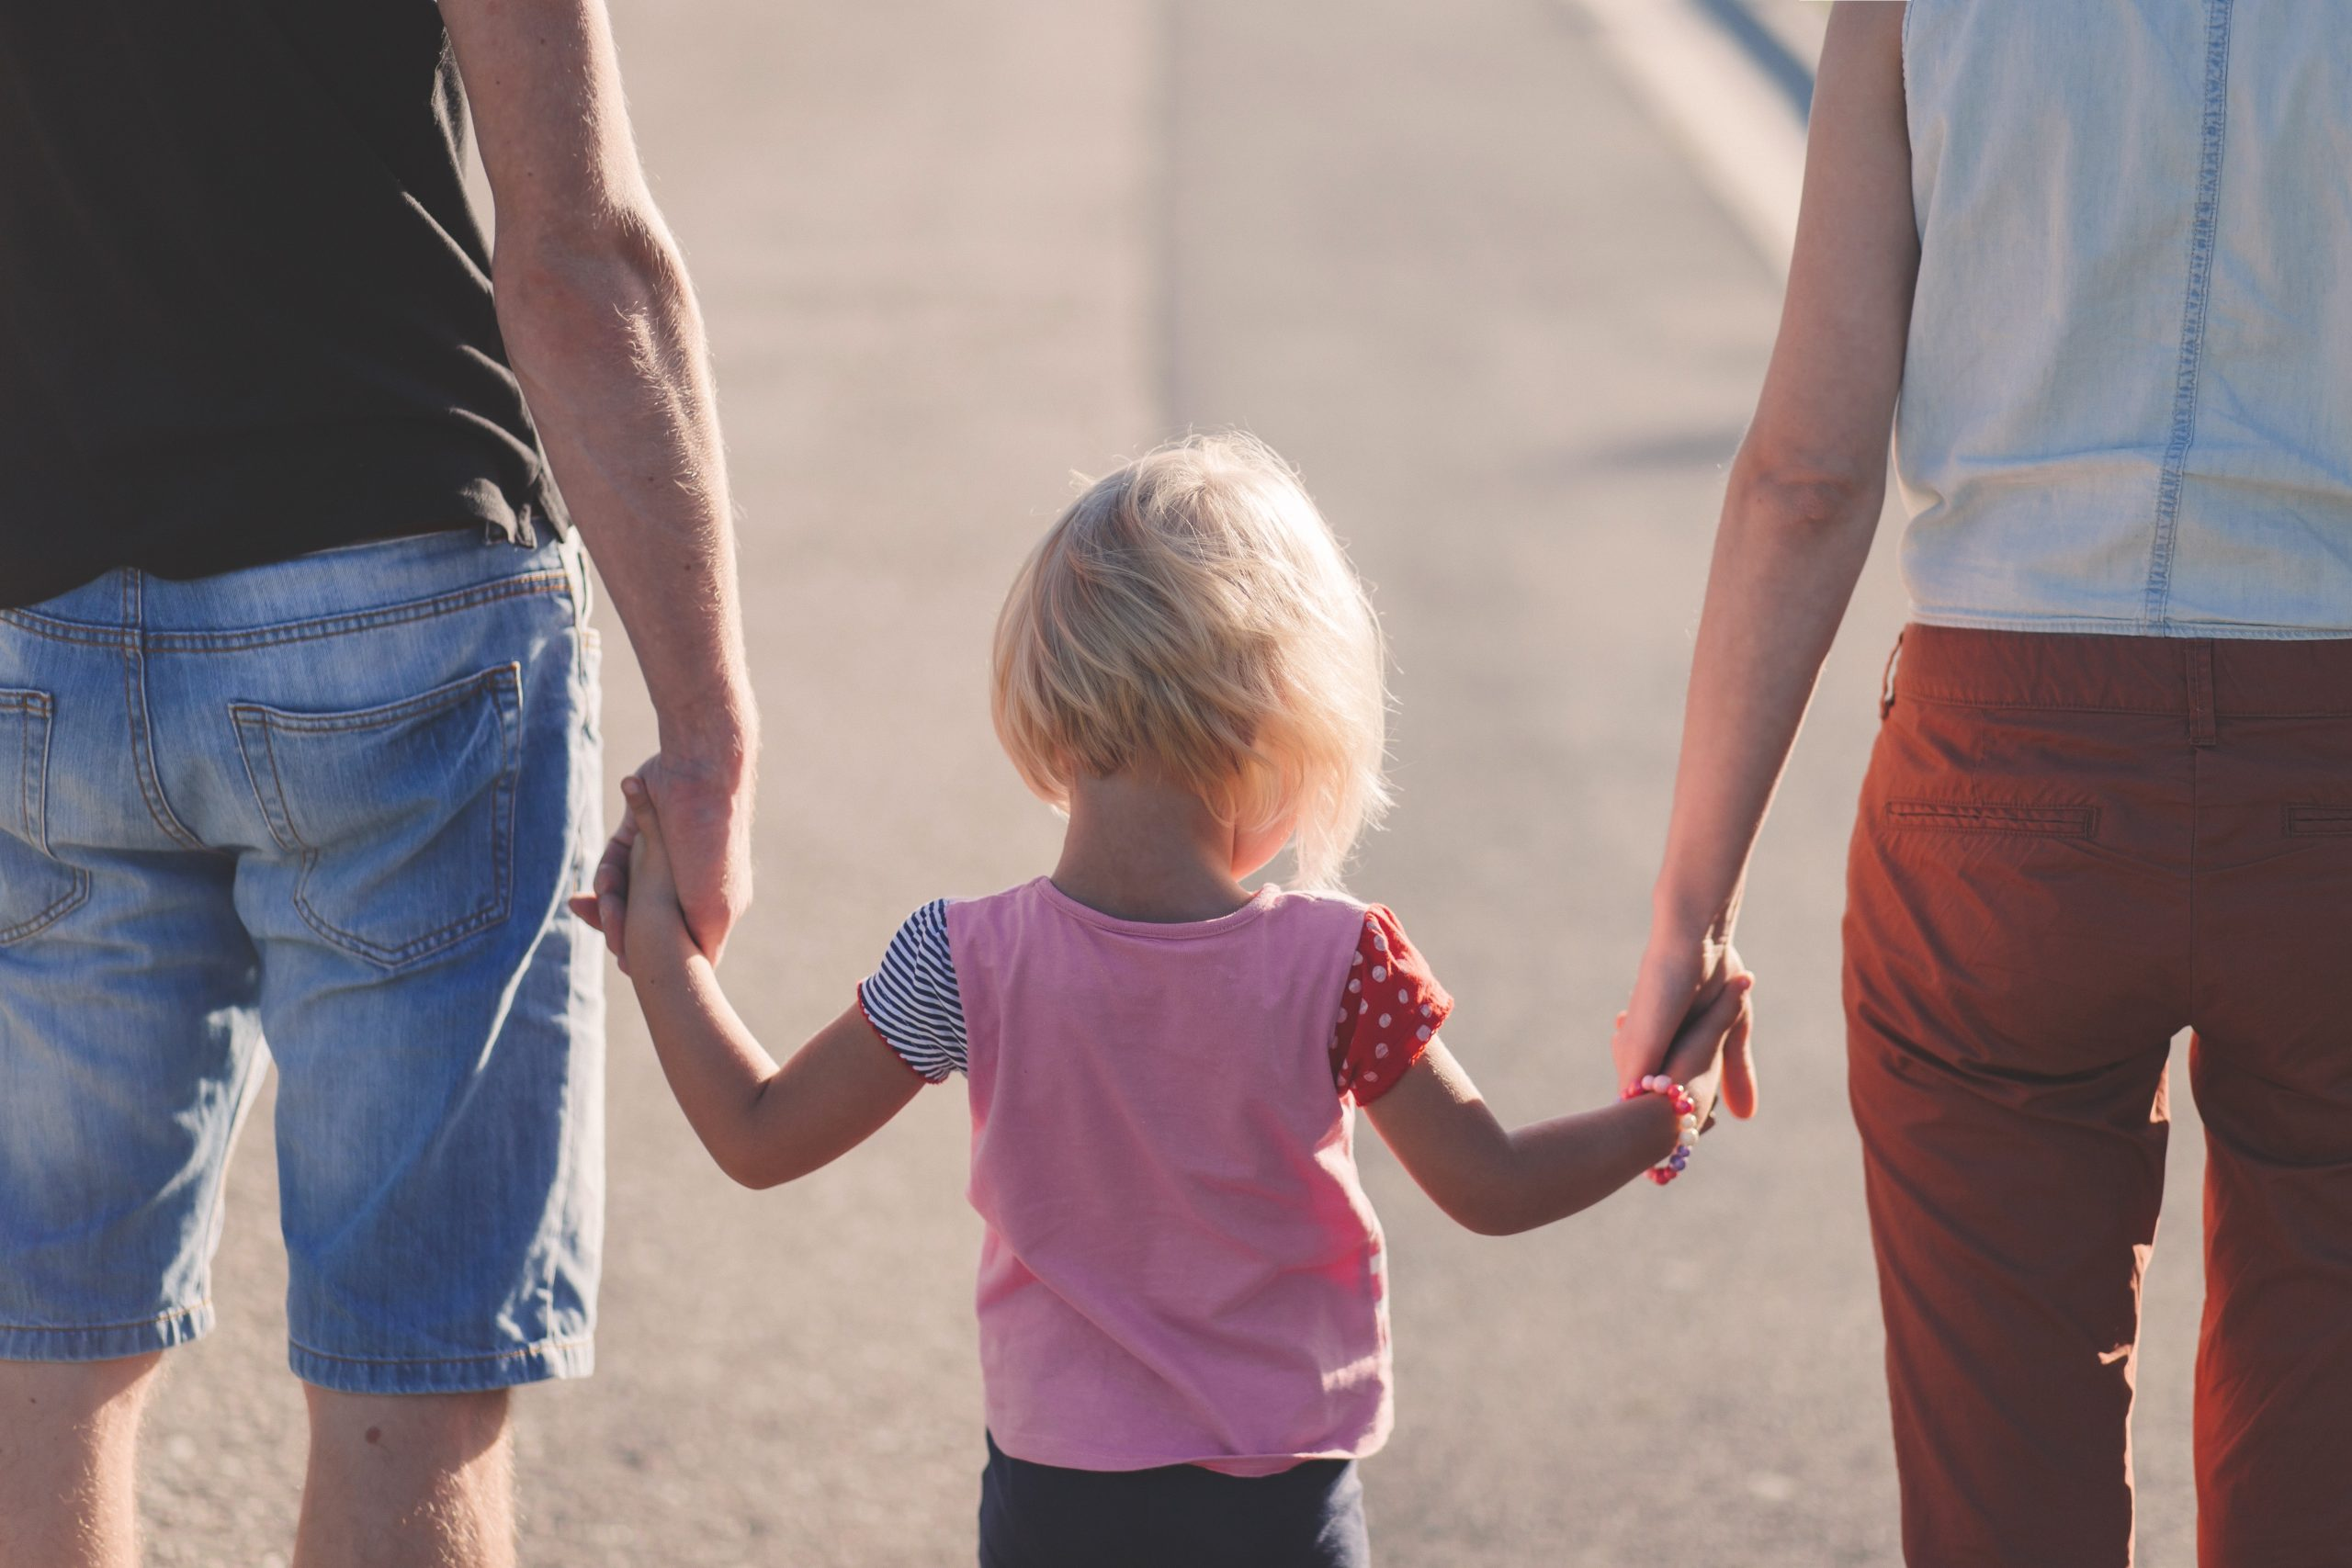 baby holding hands with adults